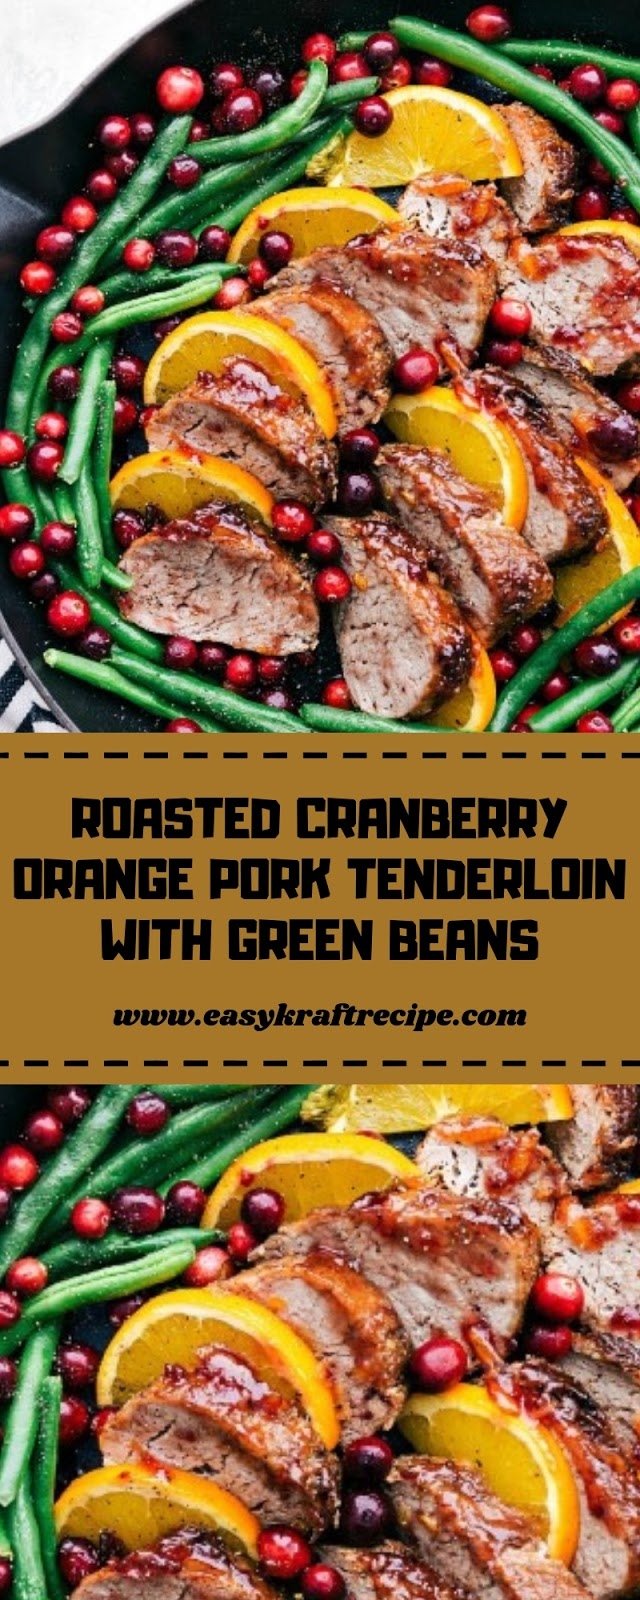 ROASTED CRANBERRY ORANGE PORK TENDERLOIN WITH GREEN BEANS